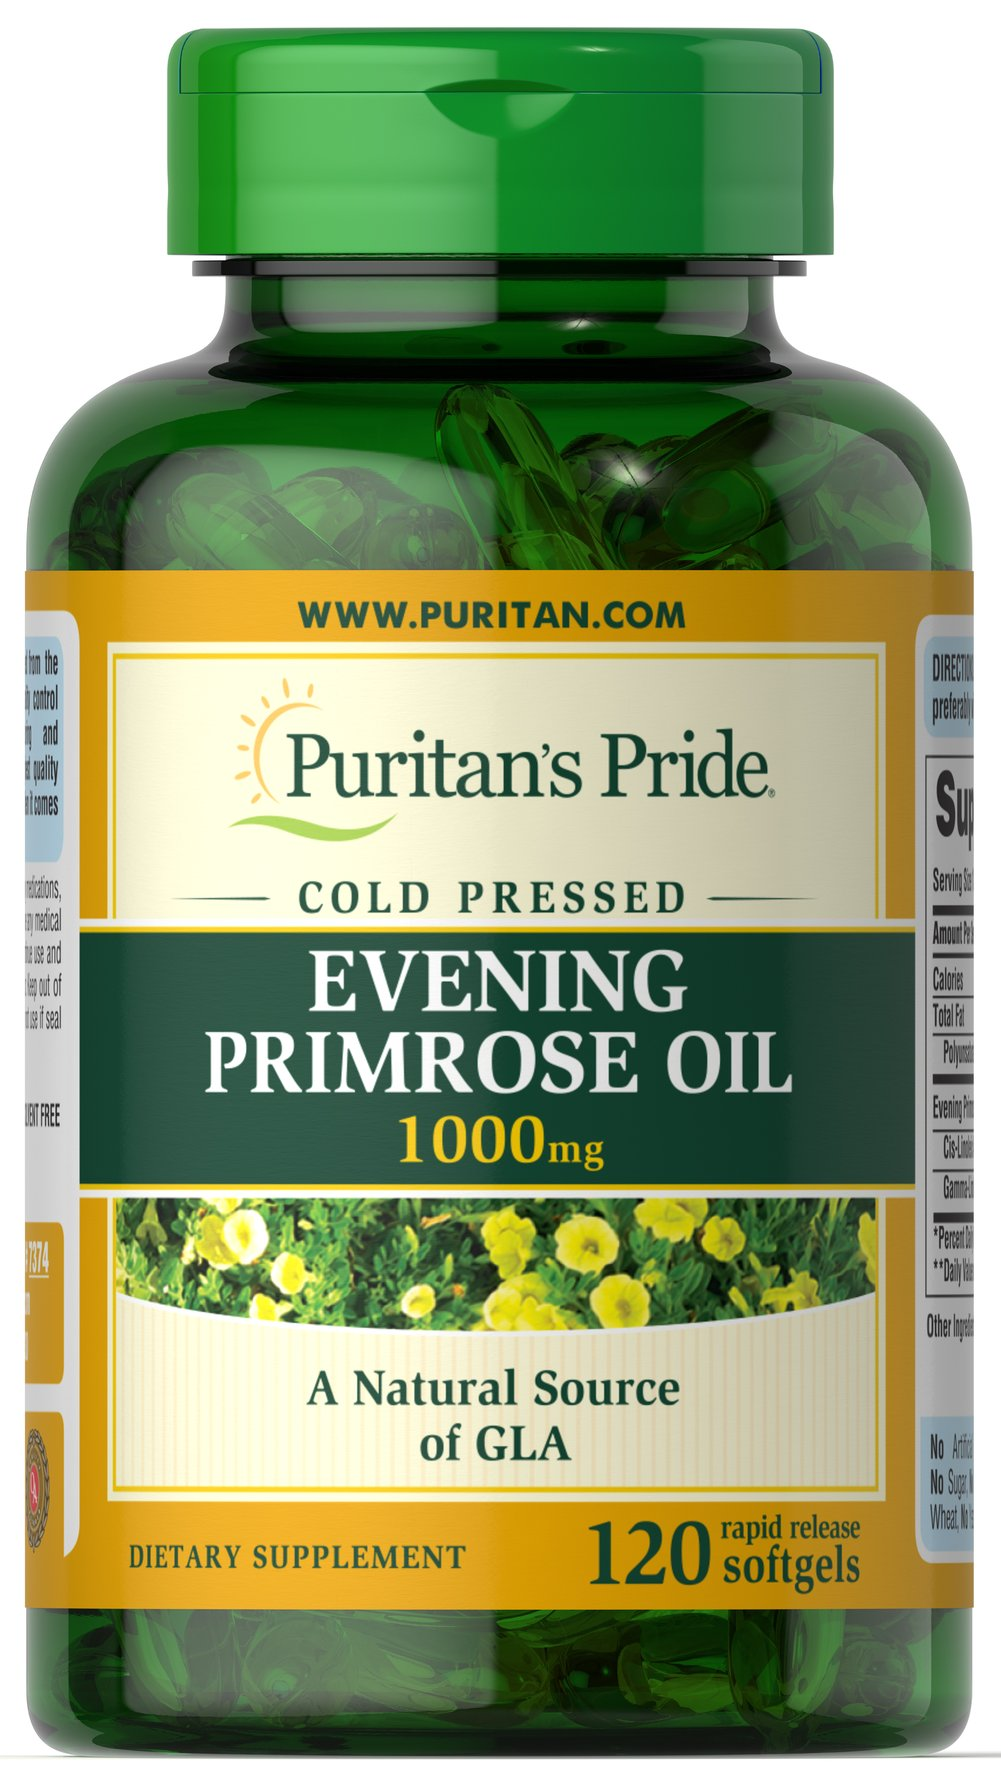 Evening Primrose Oil 1000 mg with GLA <p>For centuries, EPO has been used to provide nutritional support for women with premenstrual syndrome (PMS); it may also play a role in promoting smooth, healthy-looking skin.**</p><p>These easy-to-swallow softgels are a natural source of GLA (Gamma Linolenic Acid). Our EPO contains one of the most biologically active forms of this Omega-6 fatty acid available today.</p>  120 Softgels 1000 mg $25.99